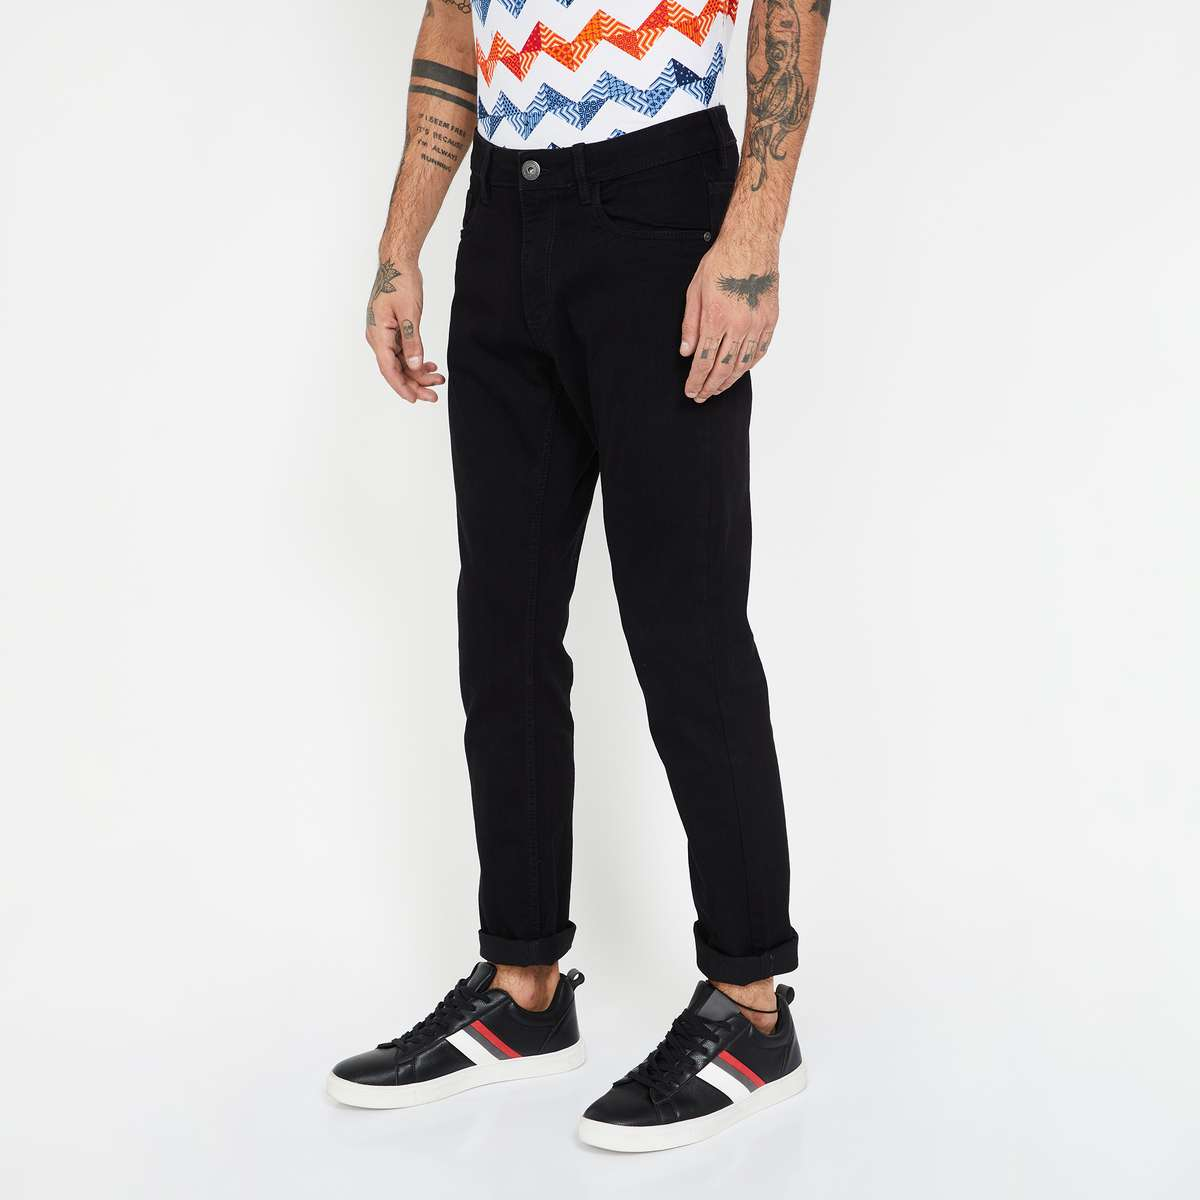 3.FORCA Solid Slim Tapered Fit Jeans